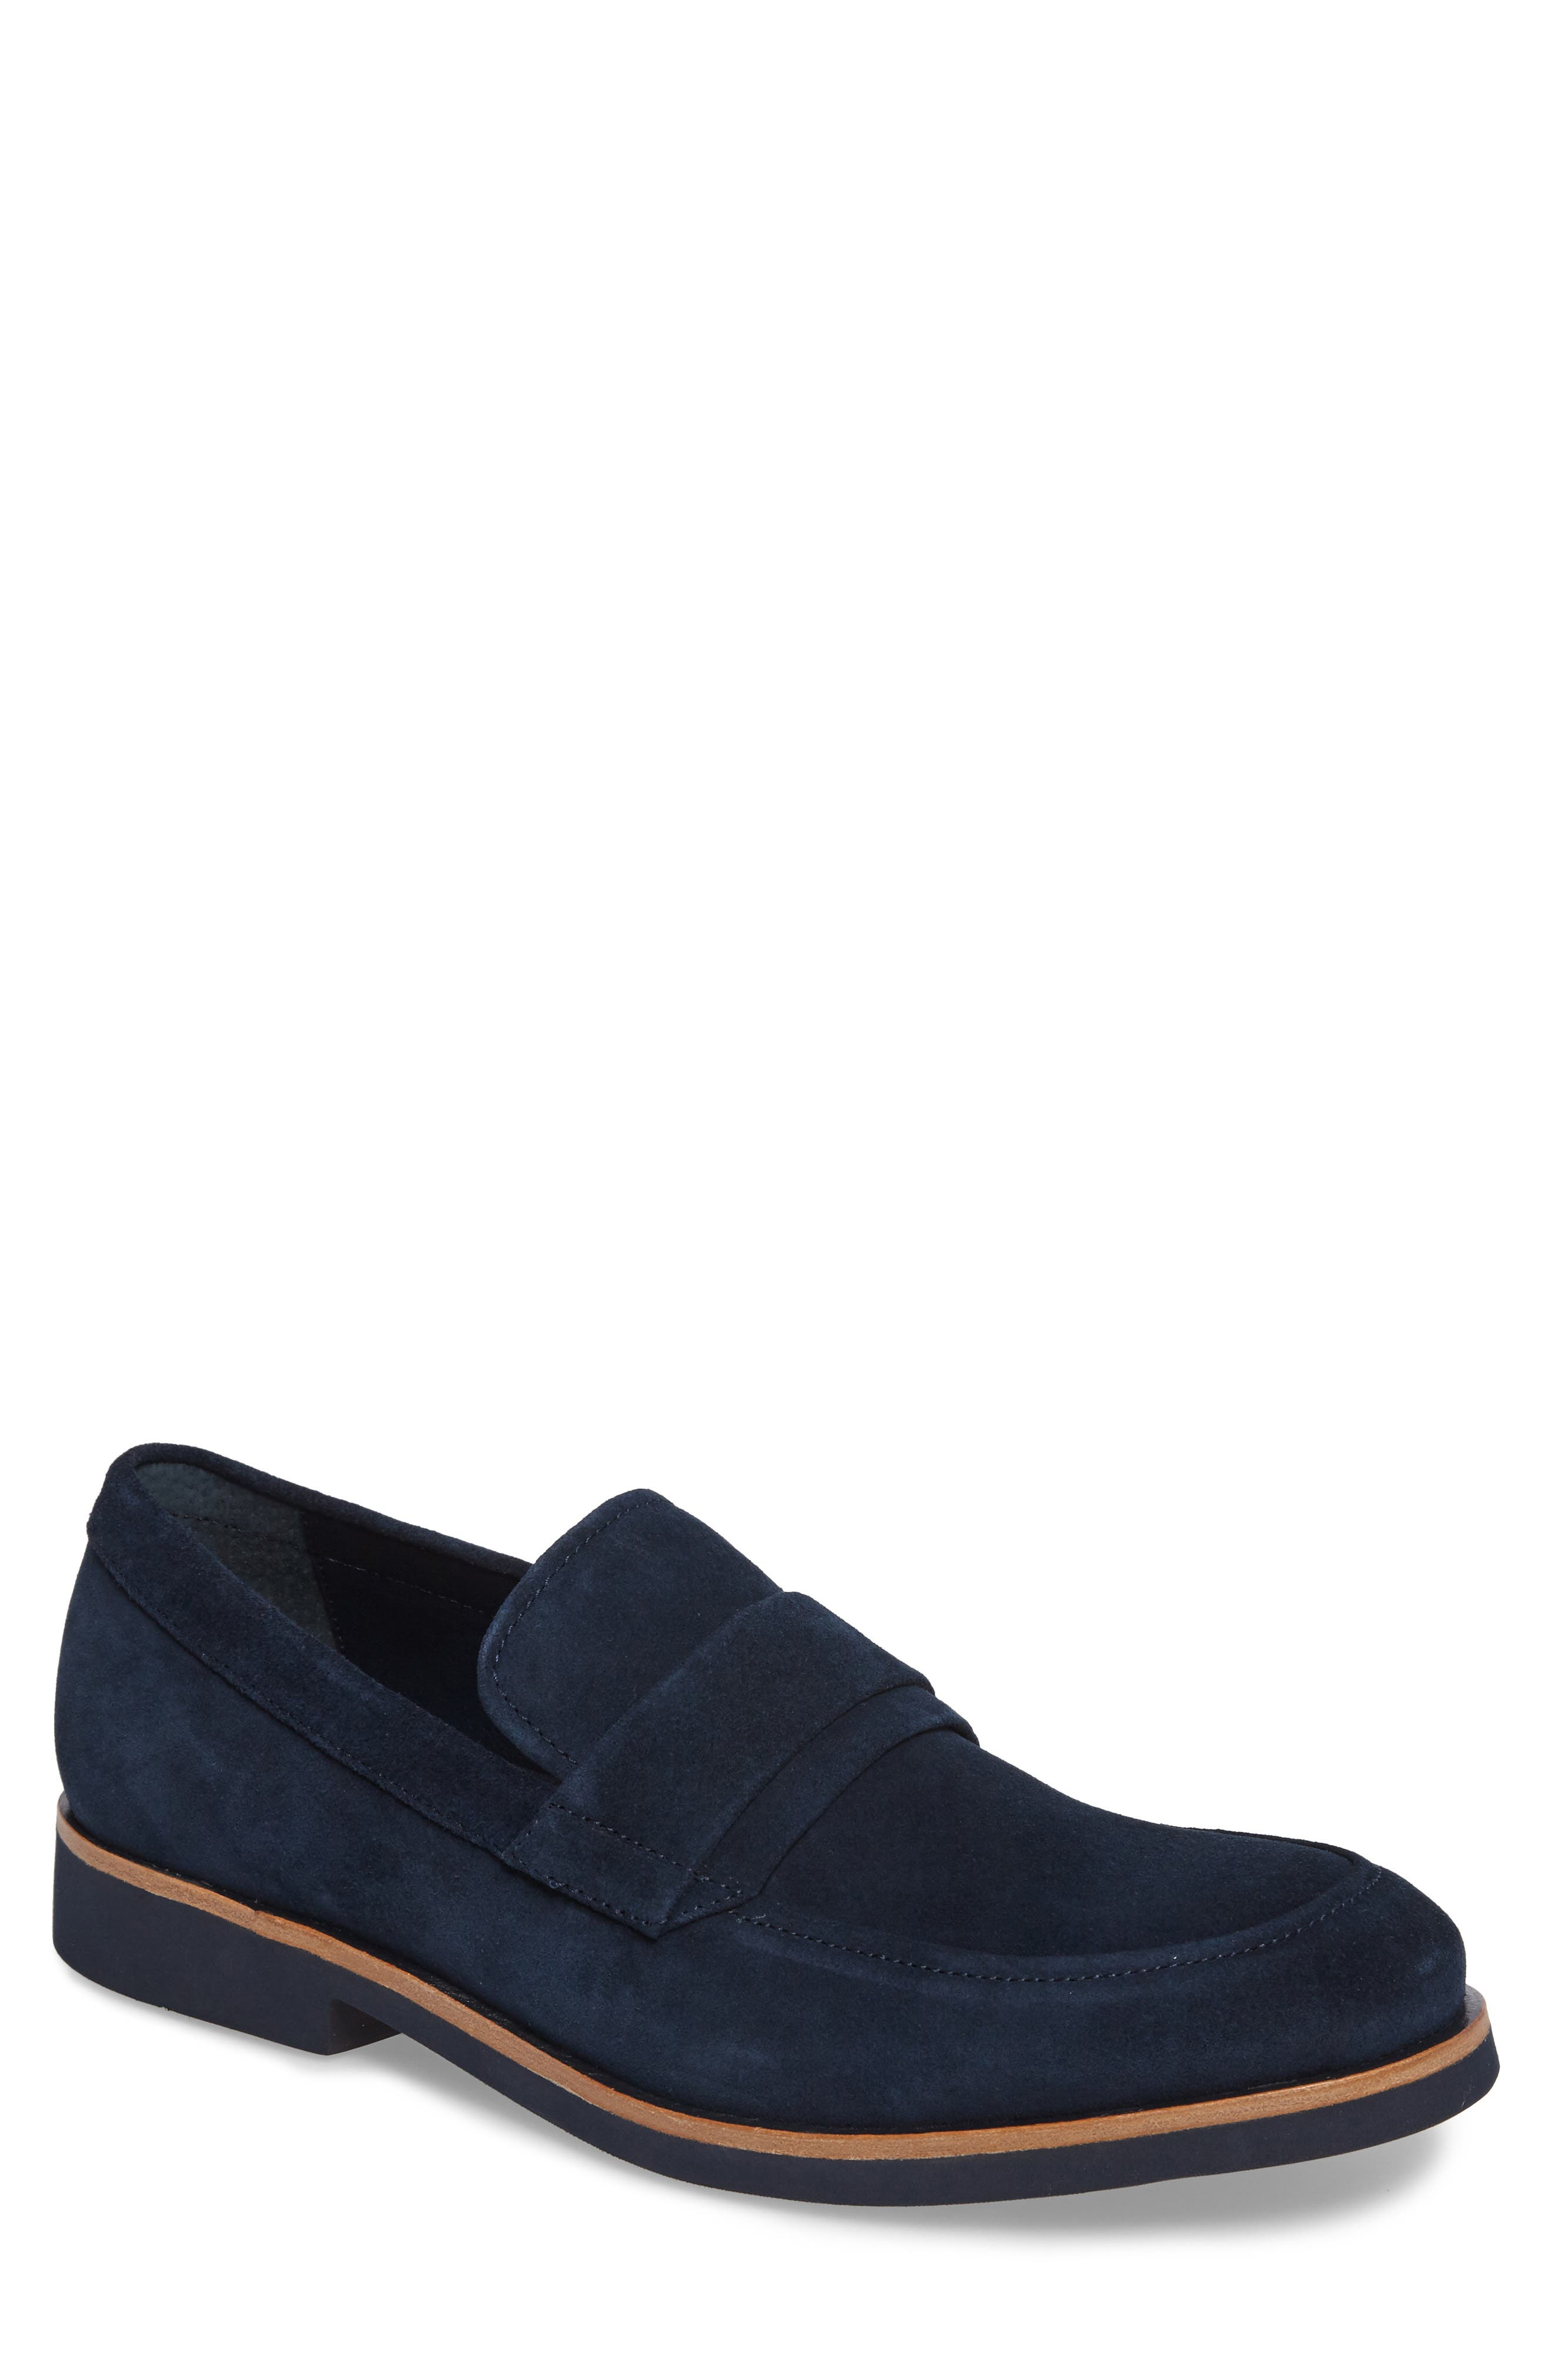 Forbes Loafer,                             Main thumbnail 3, color,